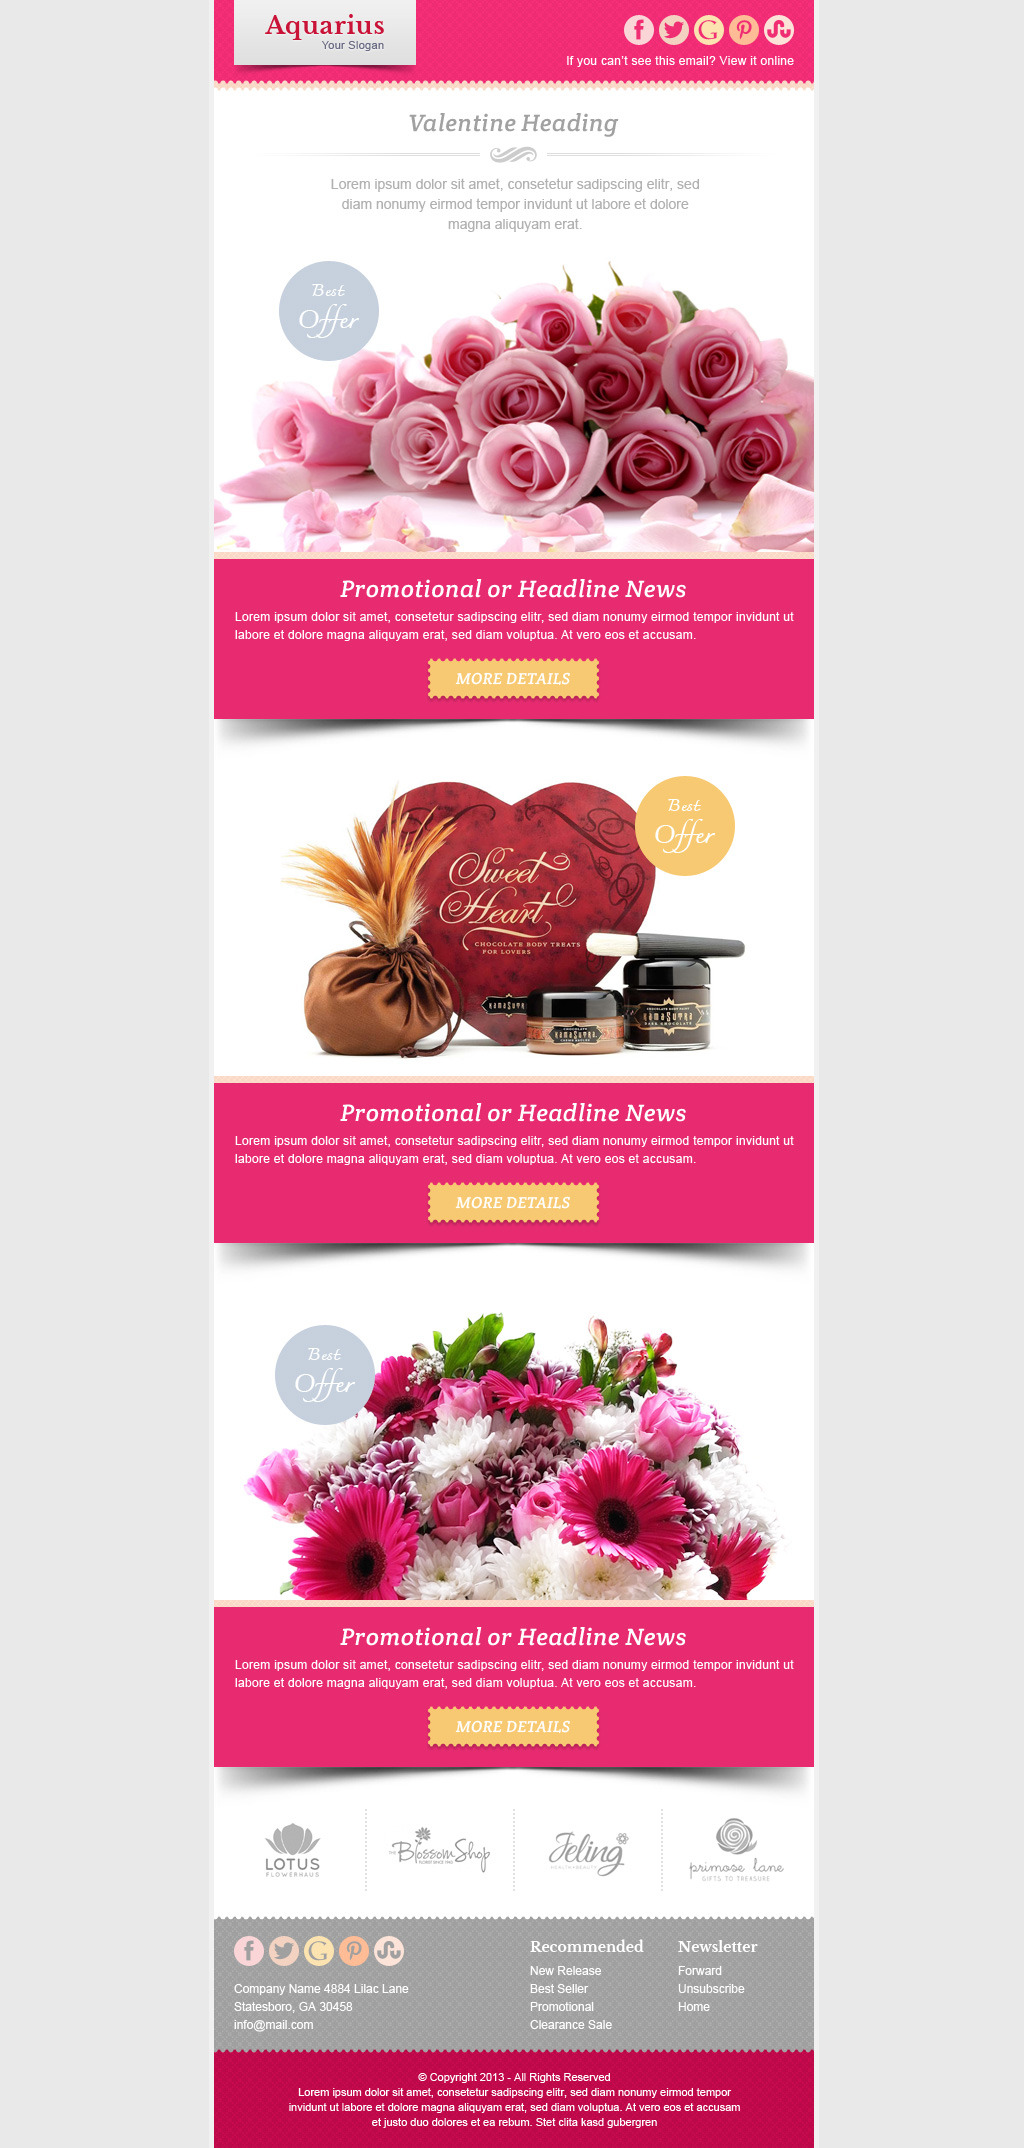 08_preview8 Valentine S Themed Newsletter Template on valentine newsletter ideas, valentine newsletter templates for teachers, valentine's newsletter template,